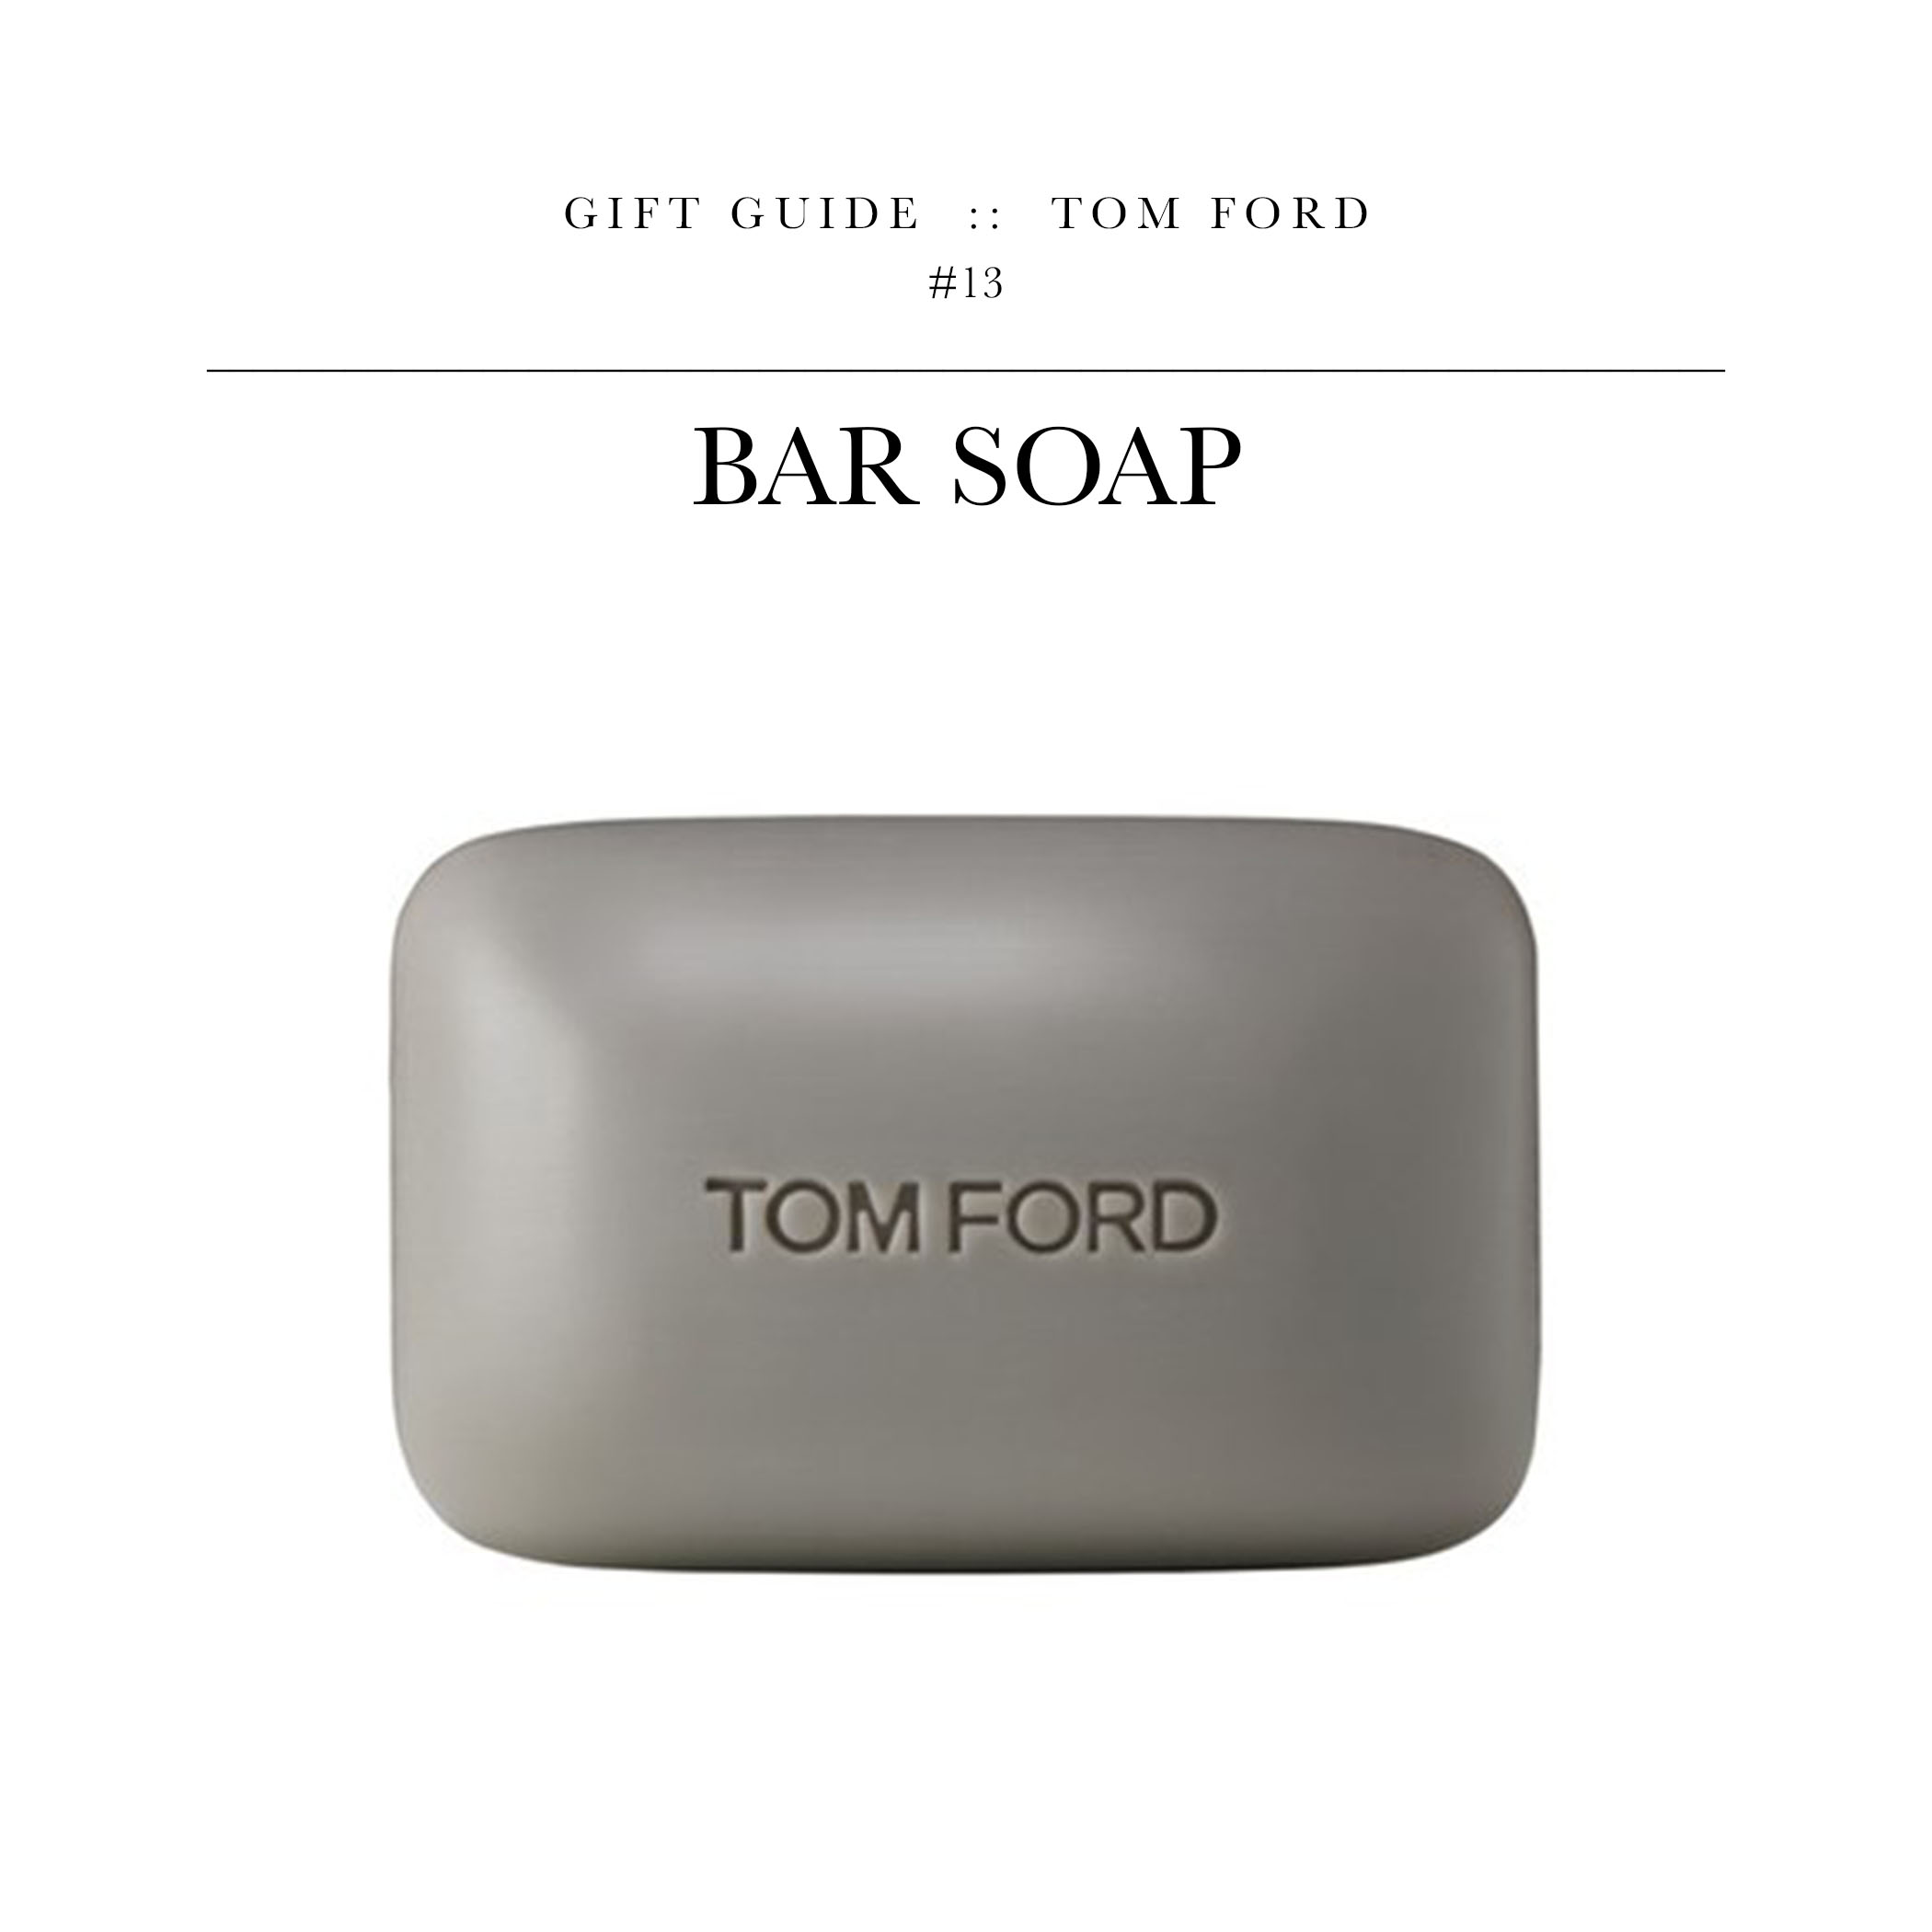 Bar Soap via Tom Ford // Another gift idea for the Narcissus of the bunch.